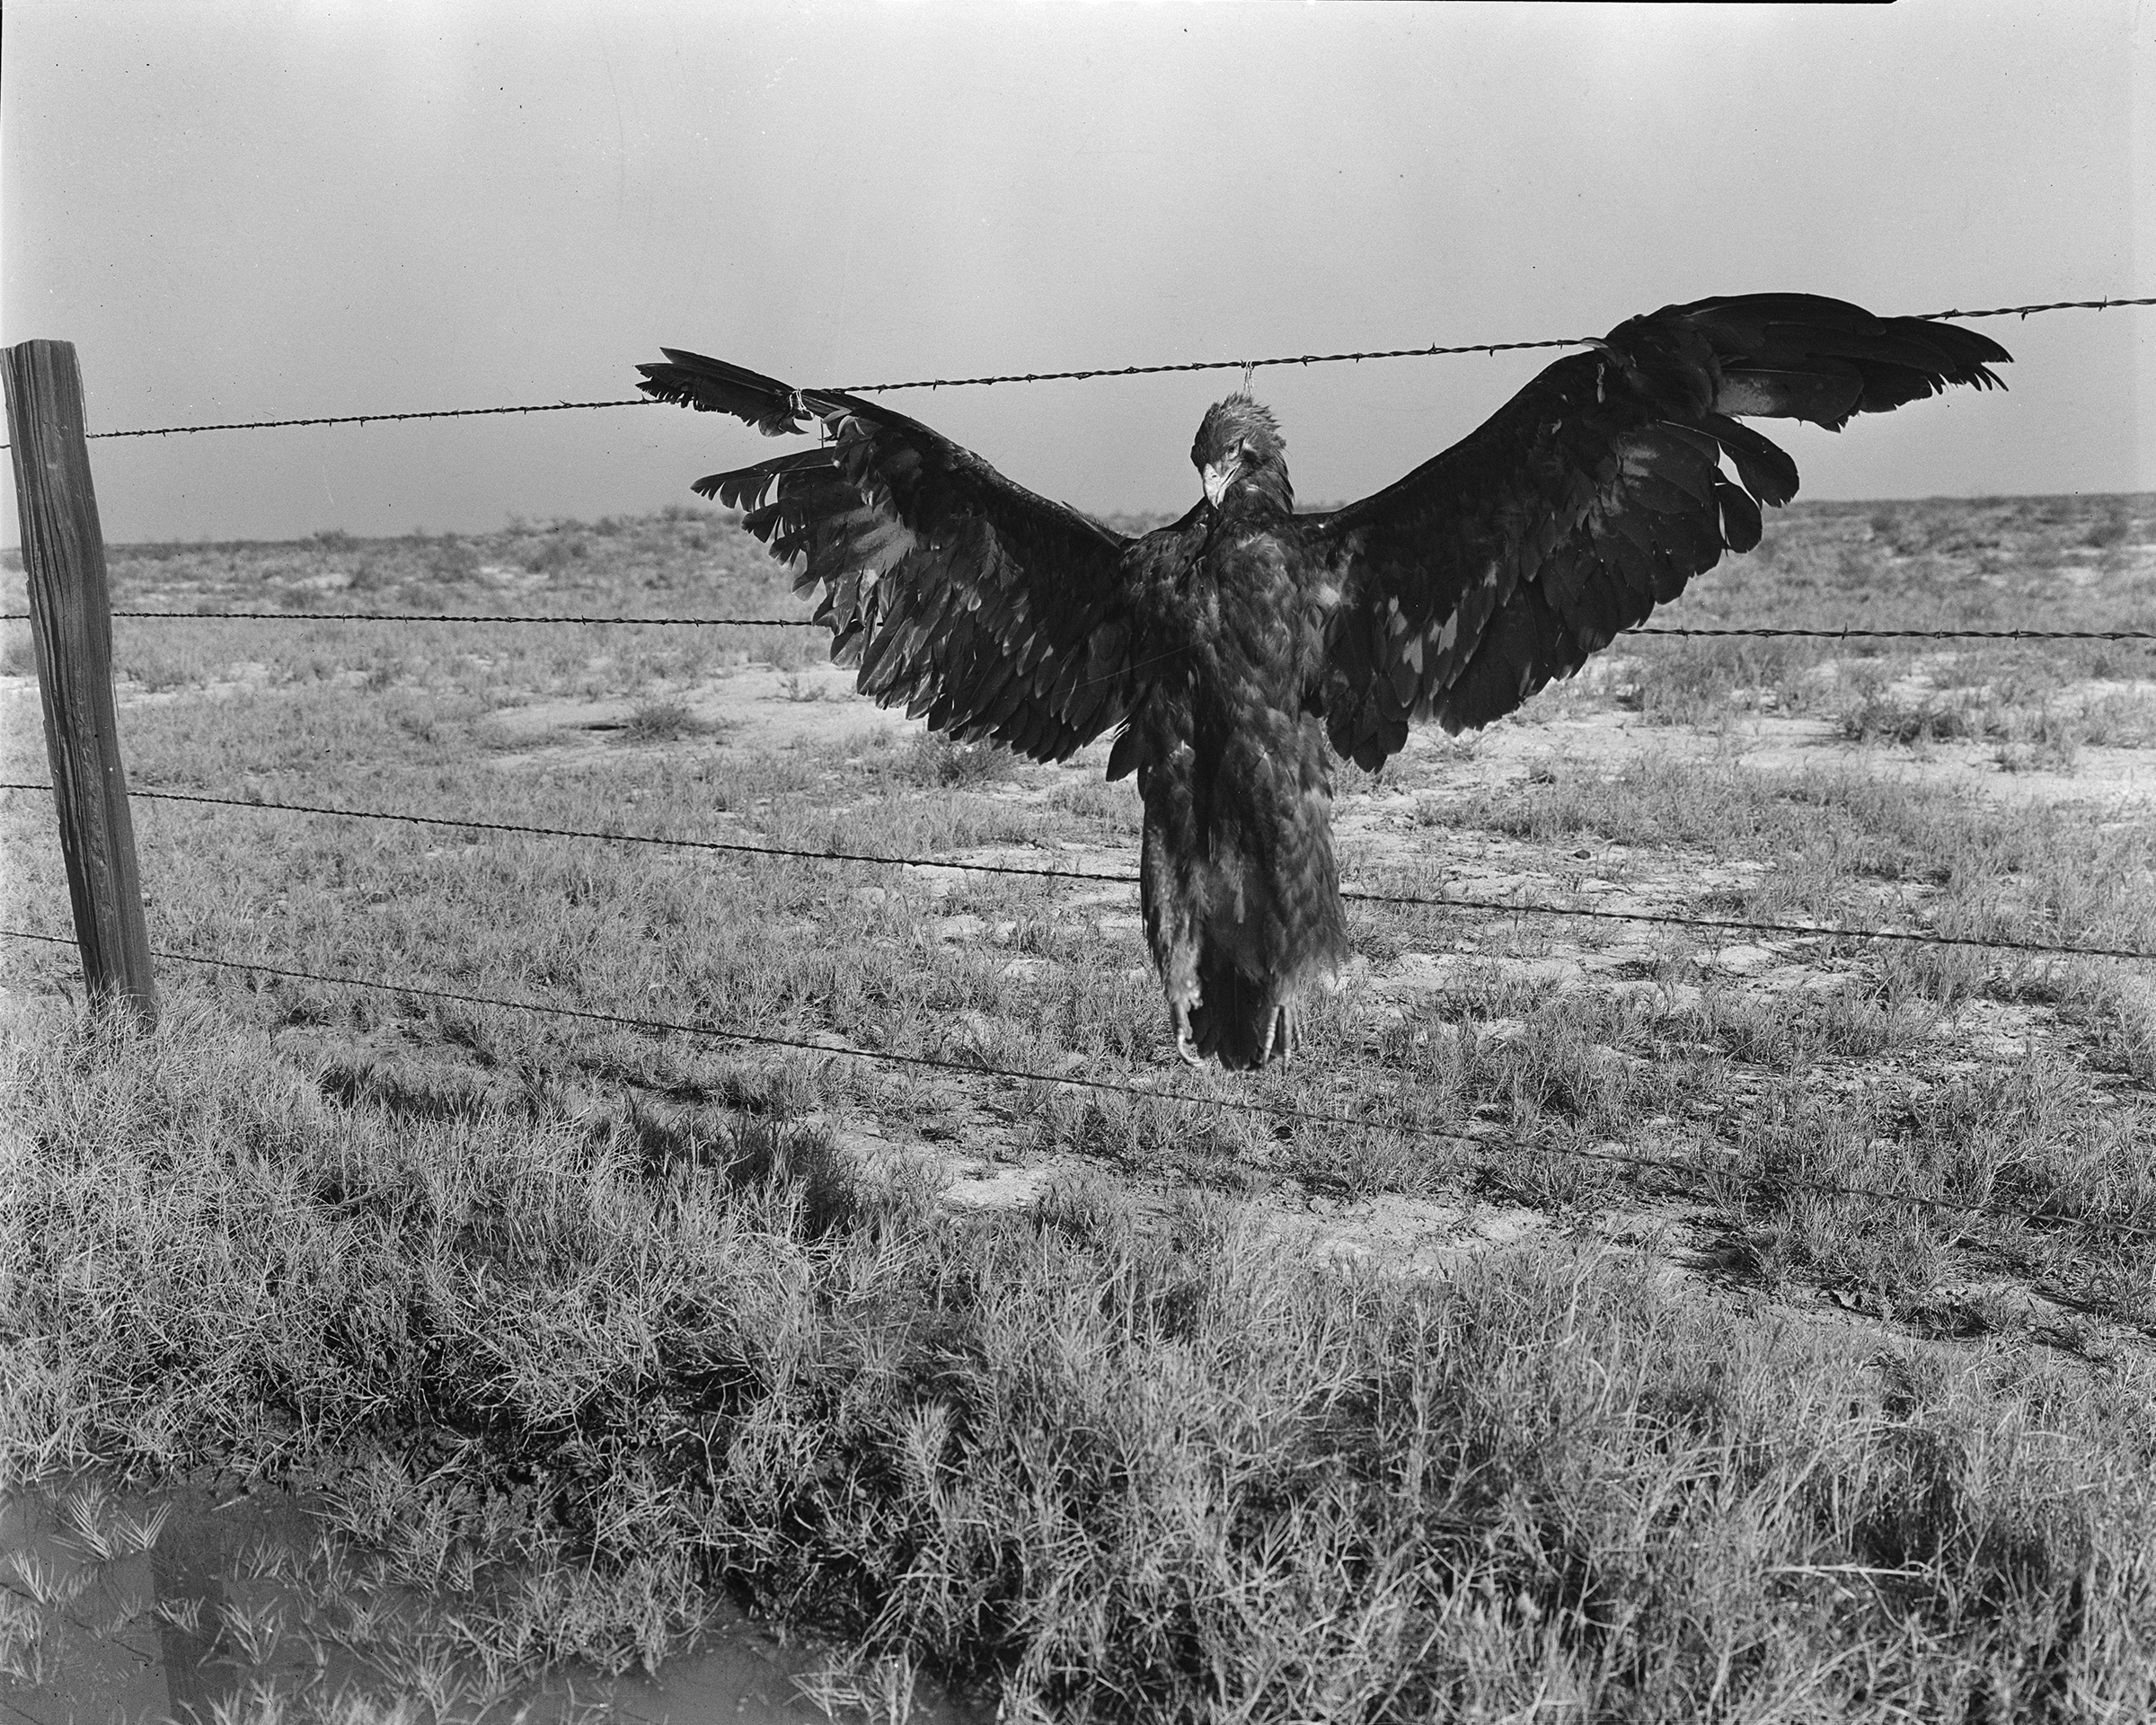 A very blue eagle. Along California highway, Nov. 1936.